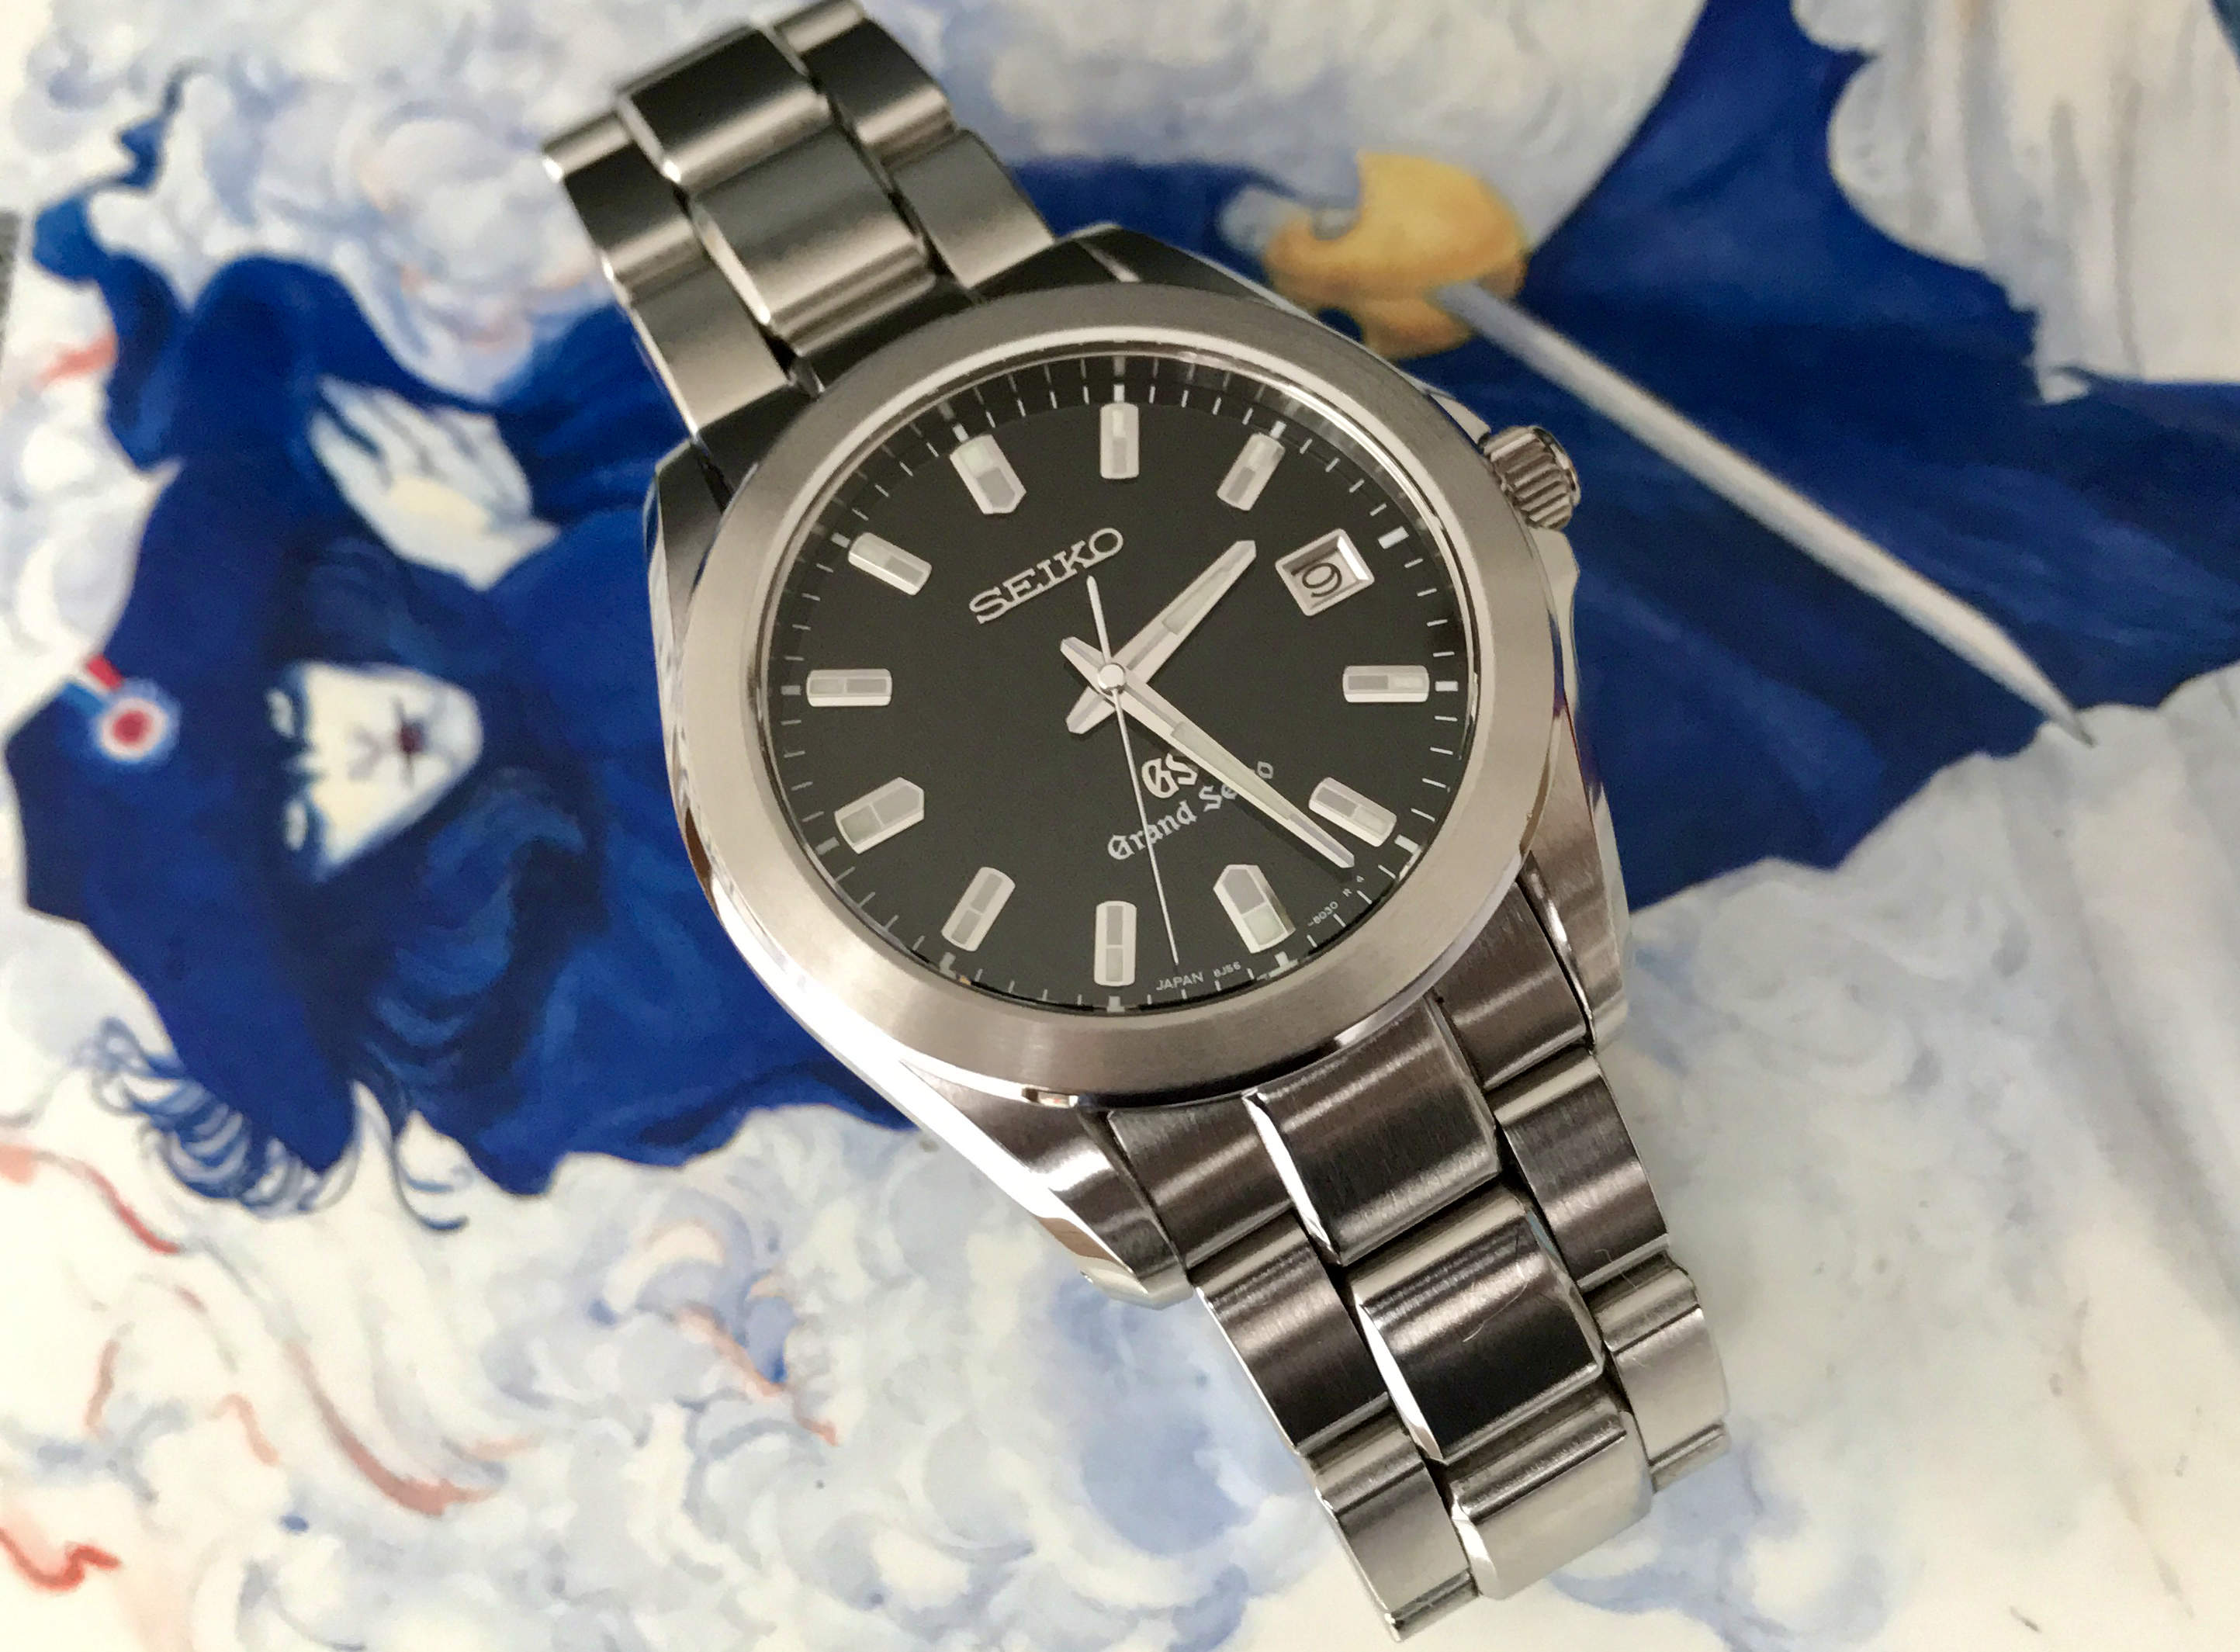 Grand Seiko 8J56-8020 SBGF021 Black Tatami (Sold)